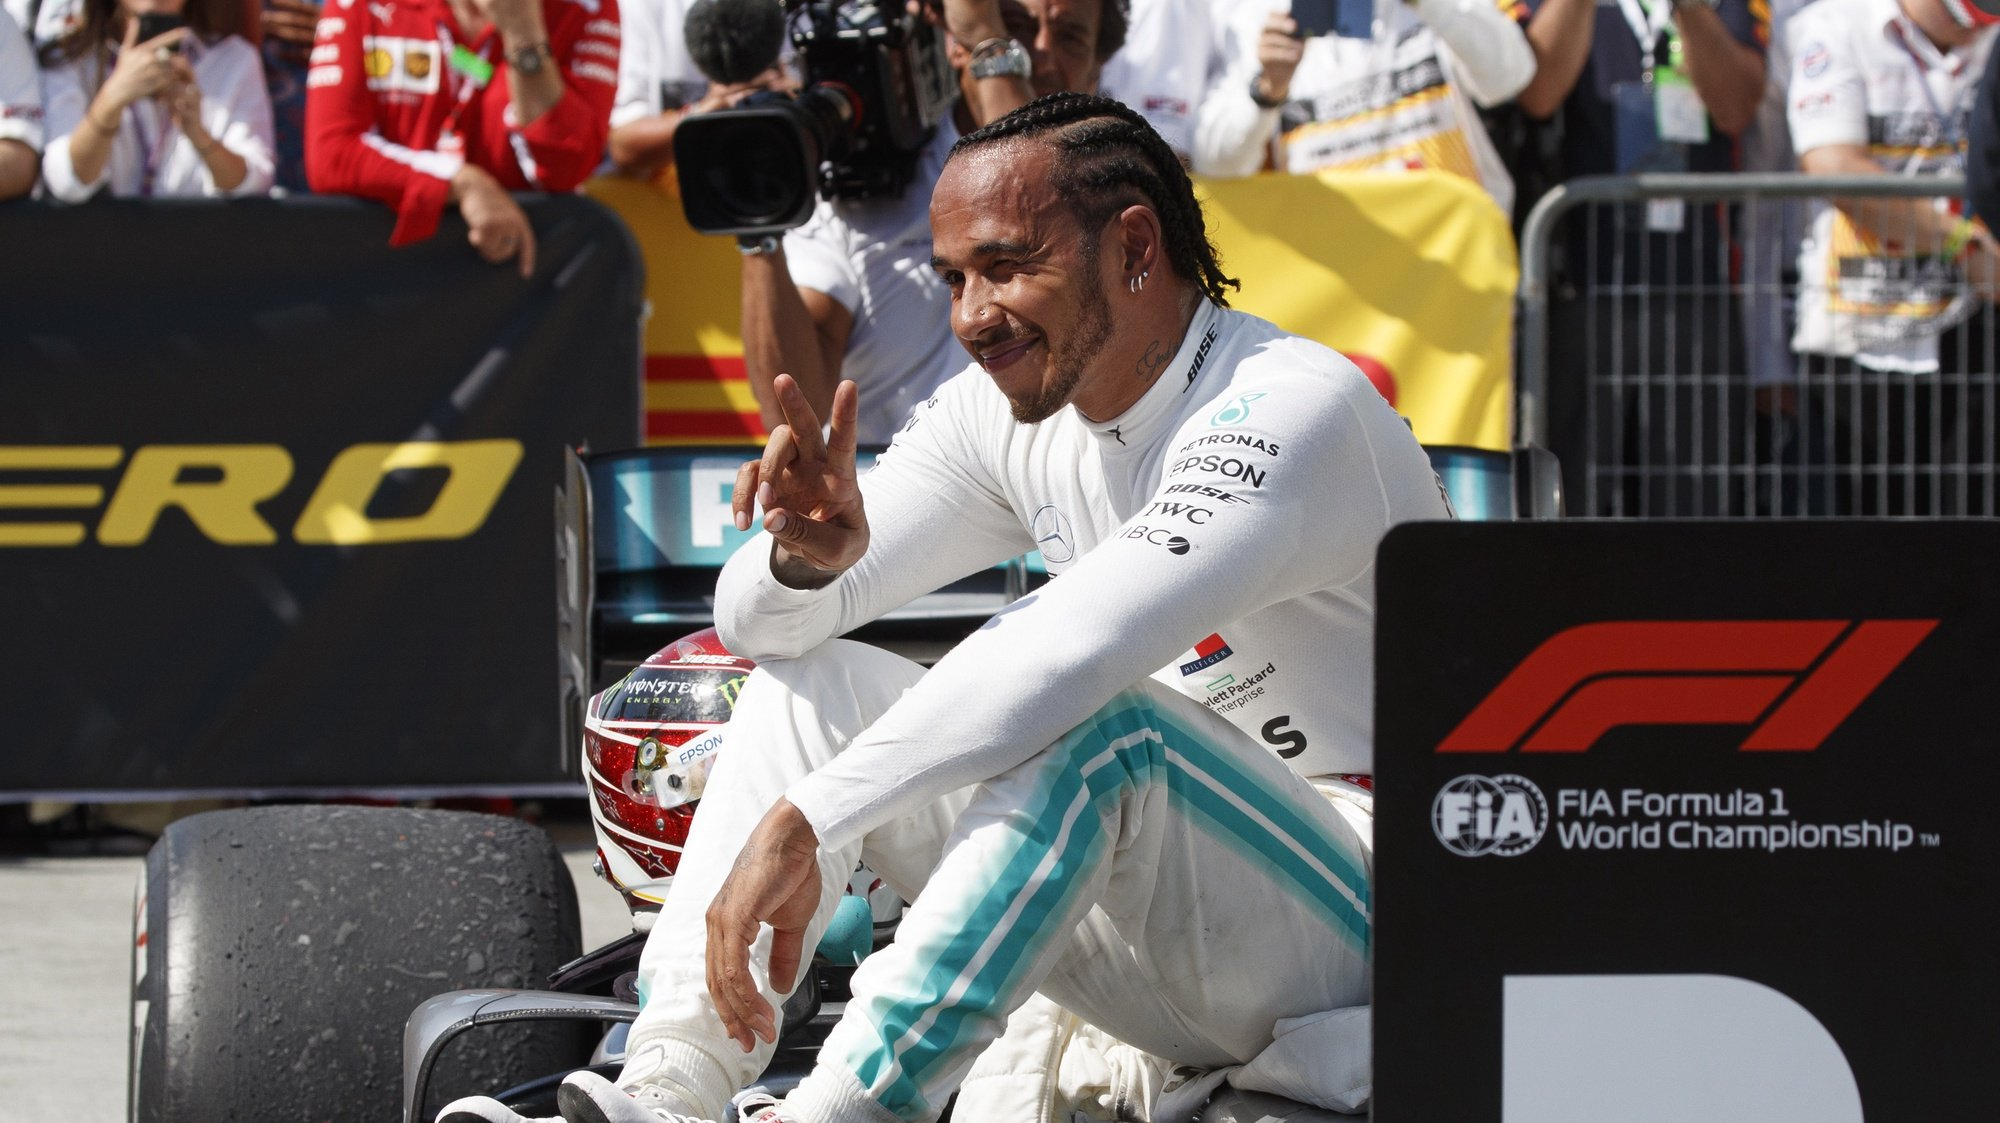 epa08996246 (FILE) - British Formula One driver Lewis Hamilton of Mercedes AMG GP reacts after winning the 2019 Canada Formula One Grand Prix at the Gilles Villeneuve circuit in Montreal, Canada, 09 June 2019, re-issued on on 08 February 2021 as Mercedes confirmed that they have signed a new contract with Hamilton for the next Formula 1 season. The contract runs for one year.  EPA/VALDRIN XHEMAJ